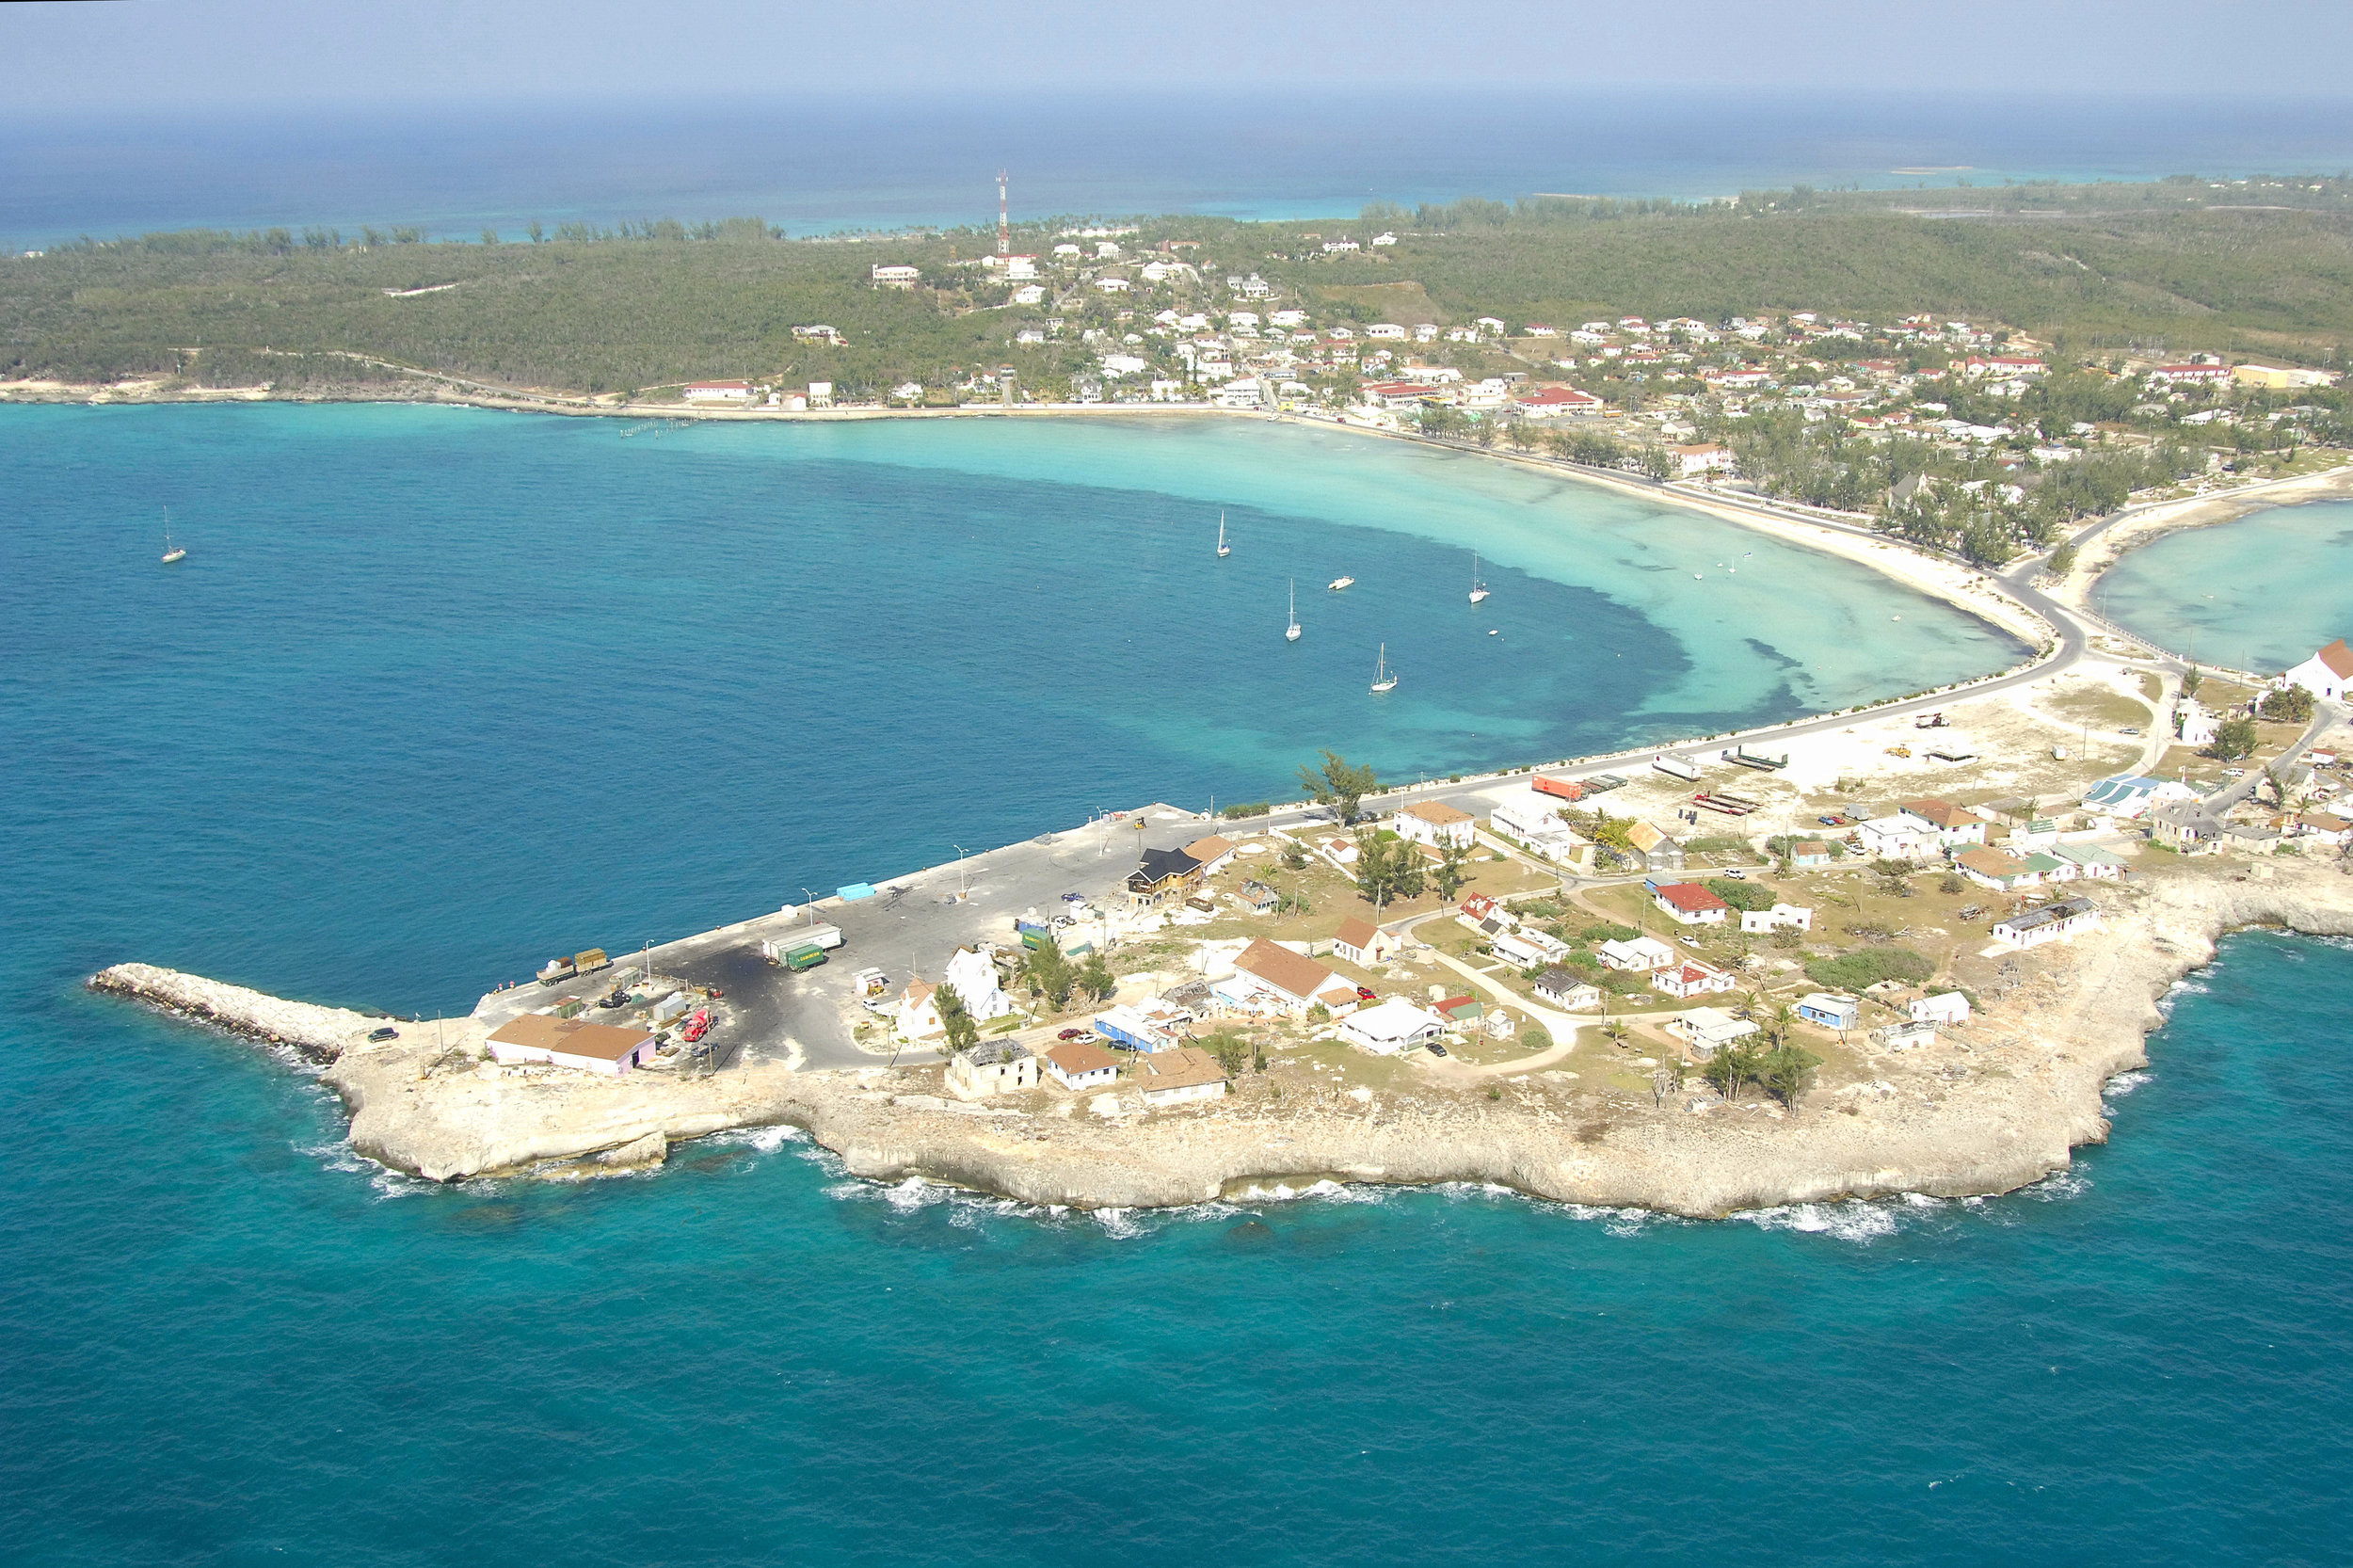 Aerial of Governor's Harbour. Image by Eleutheran Life.